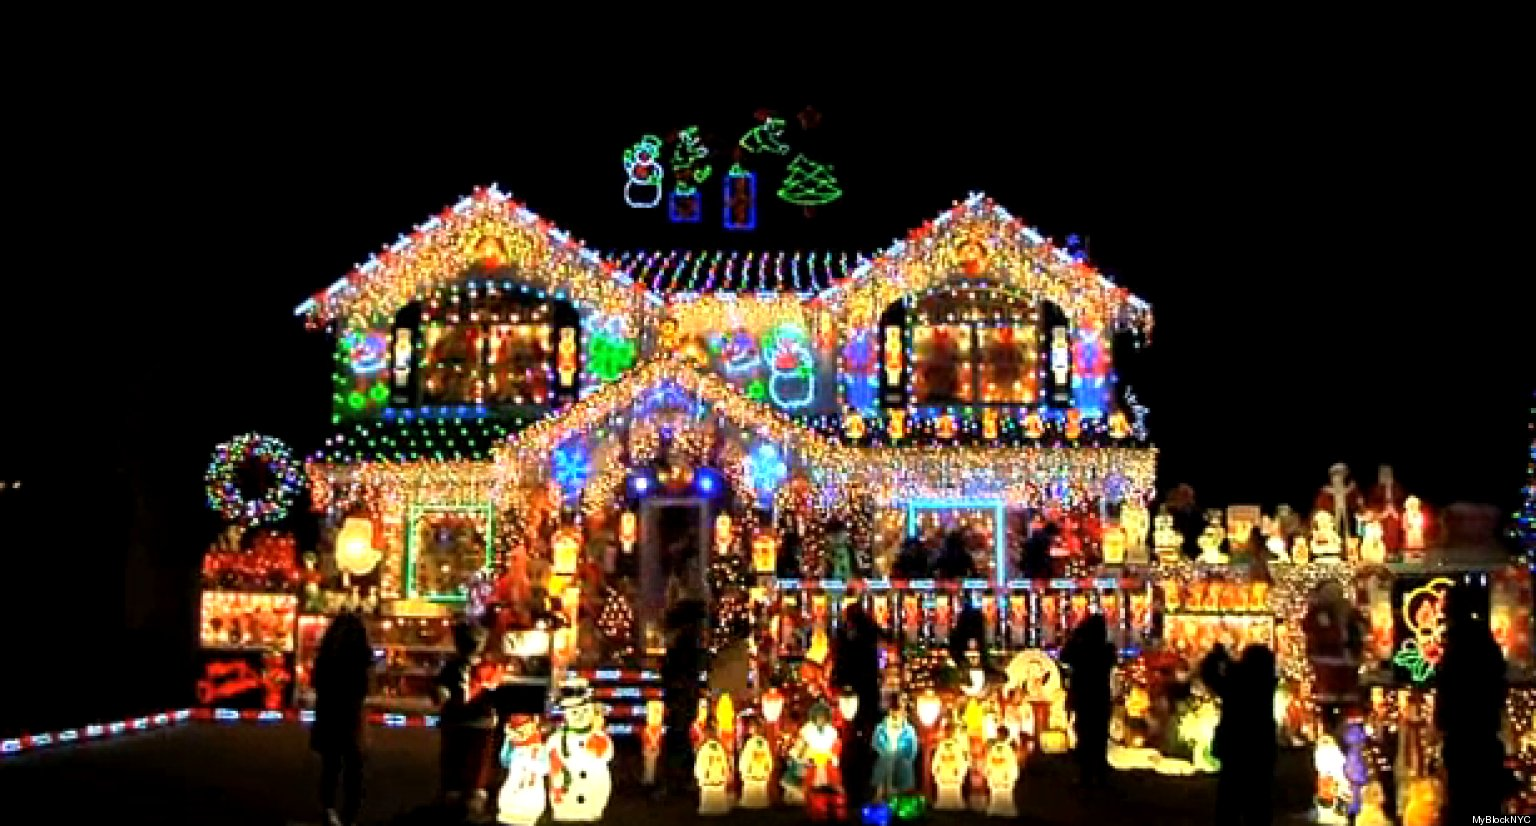 The Brightest Christmas H n 2348012 on houses in deutschland